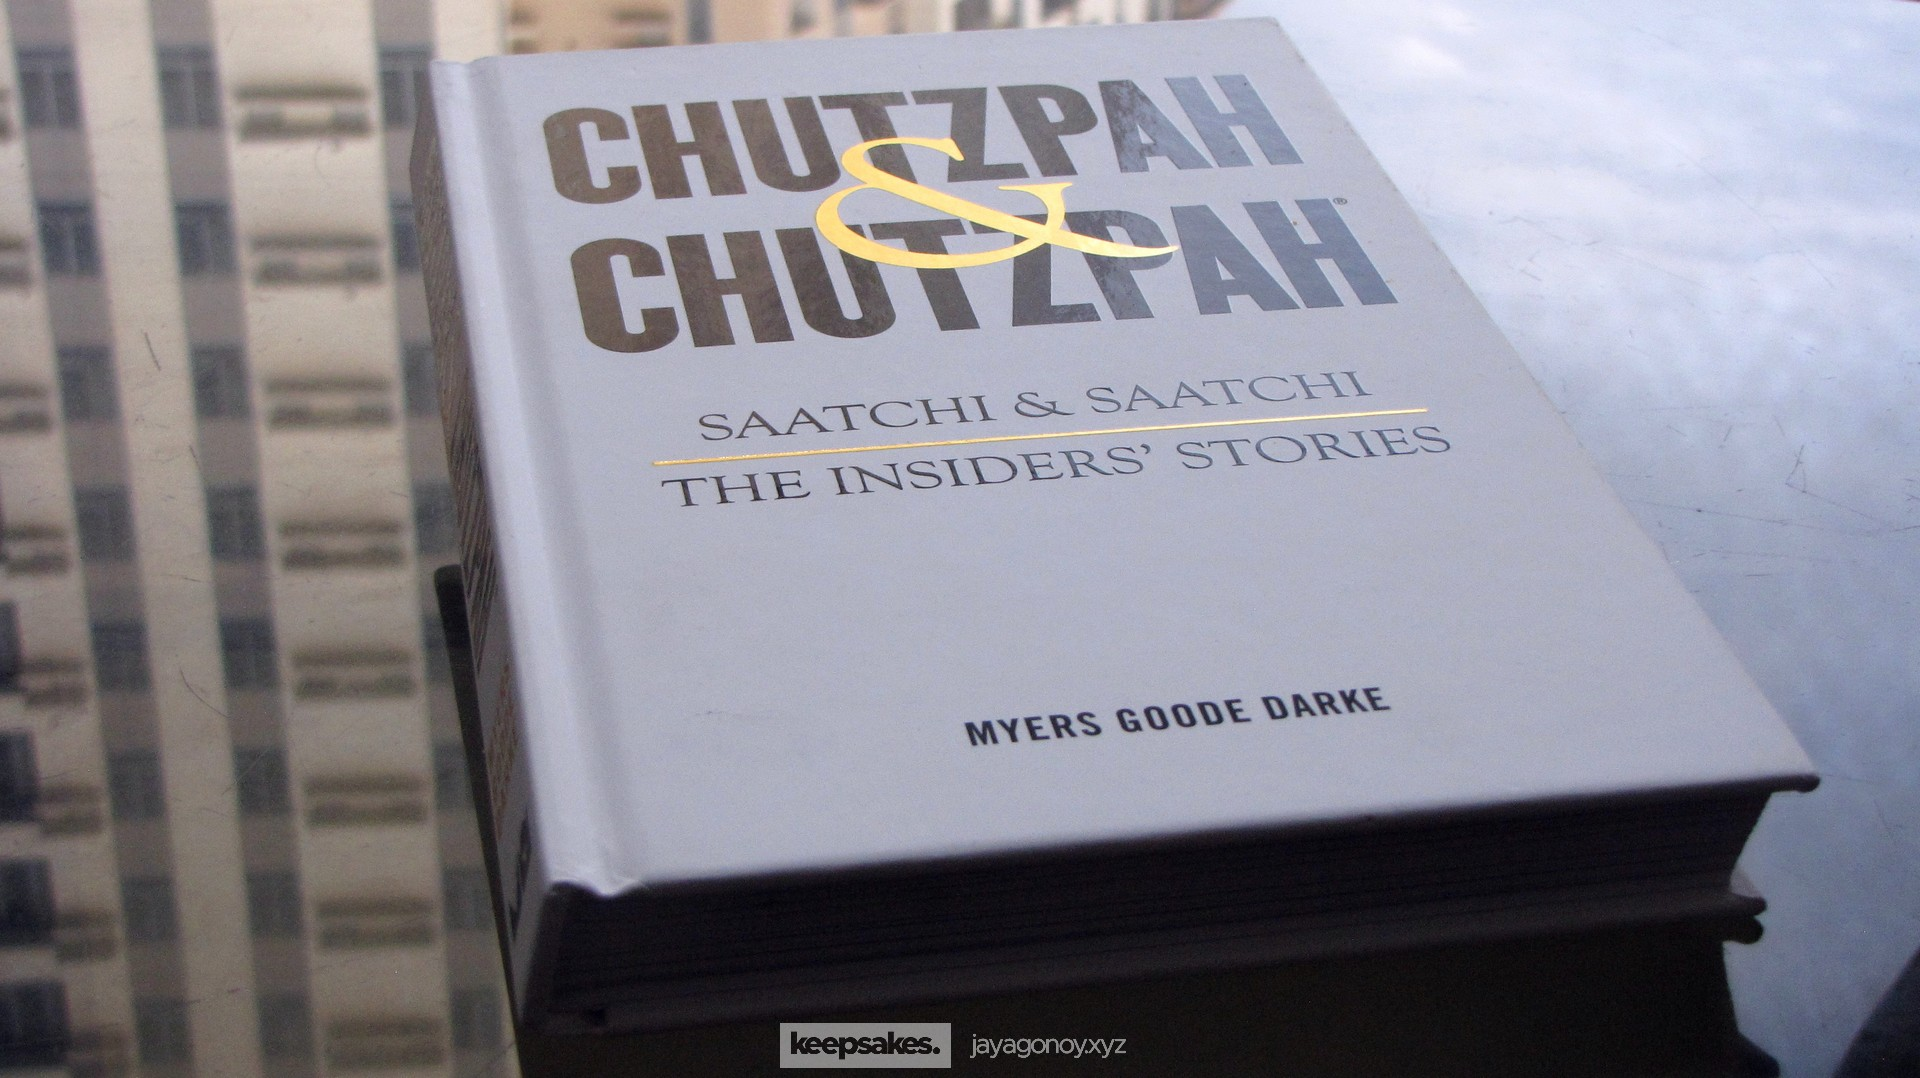 Chutzpah & Chutzpah: Saatchi & Saatchi's stories as told by insiders